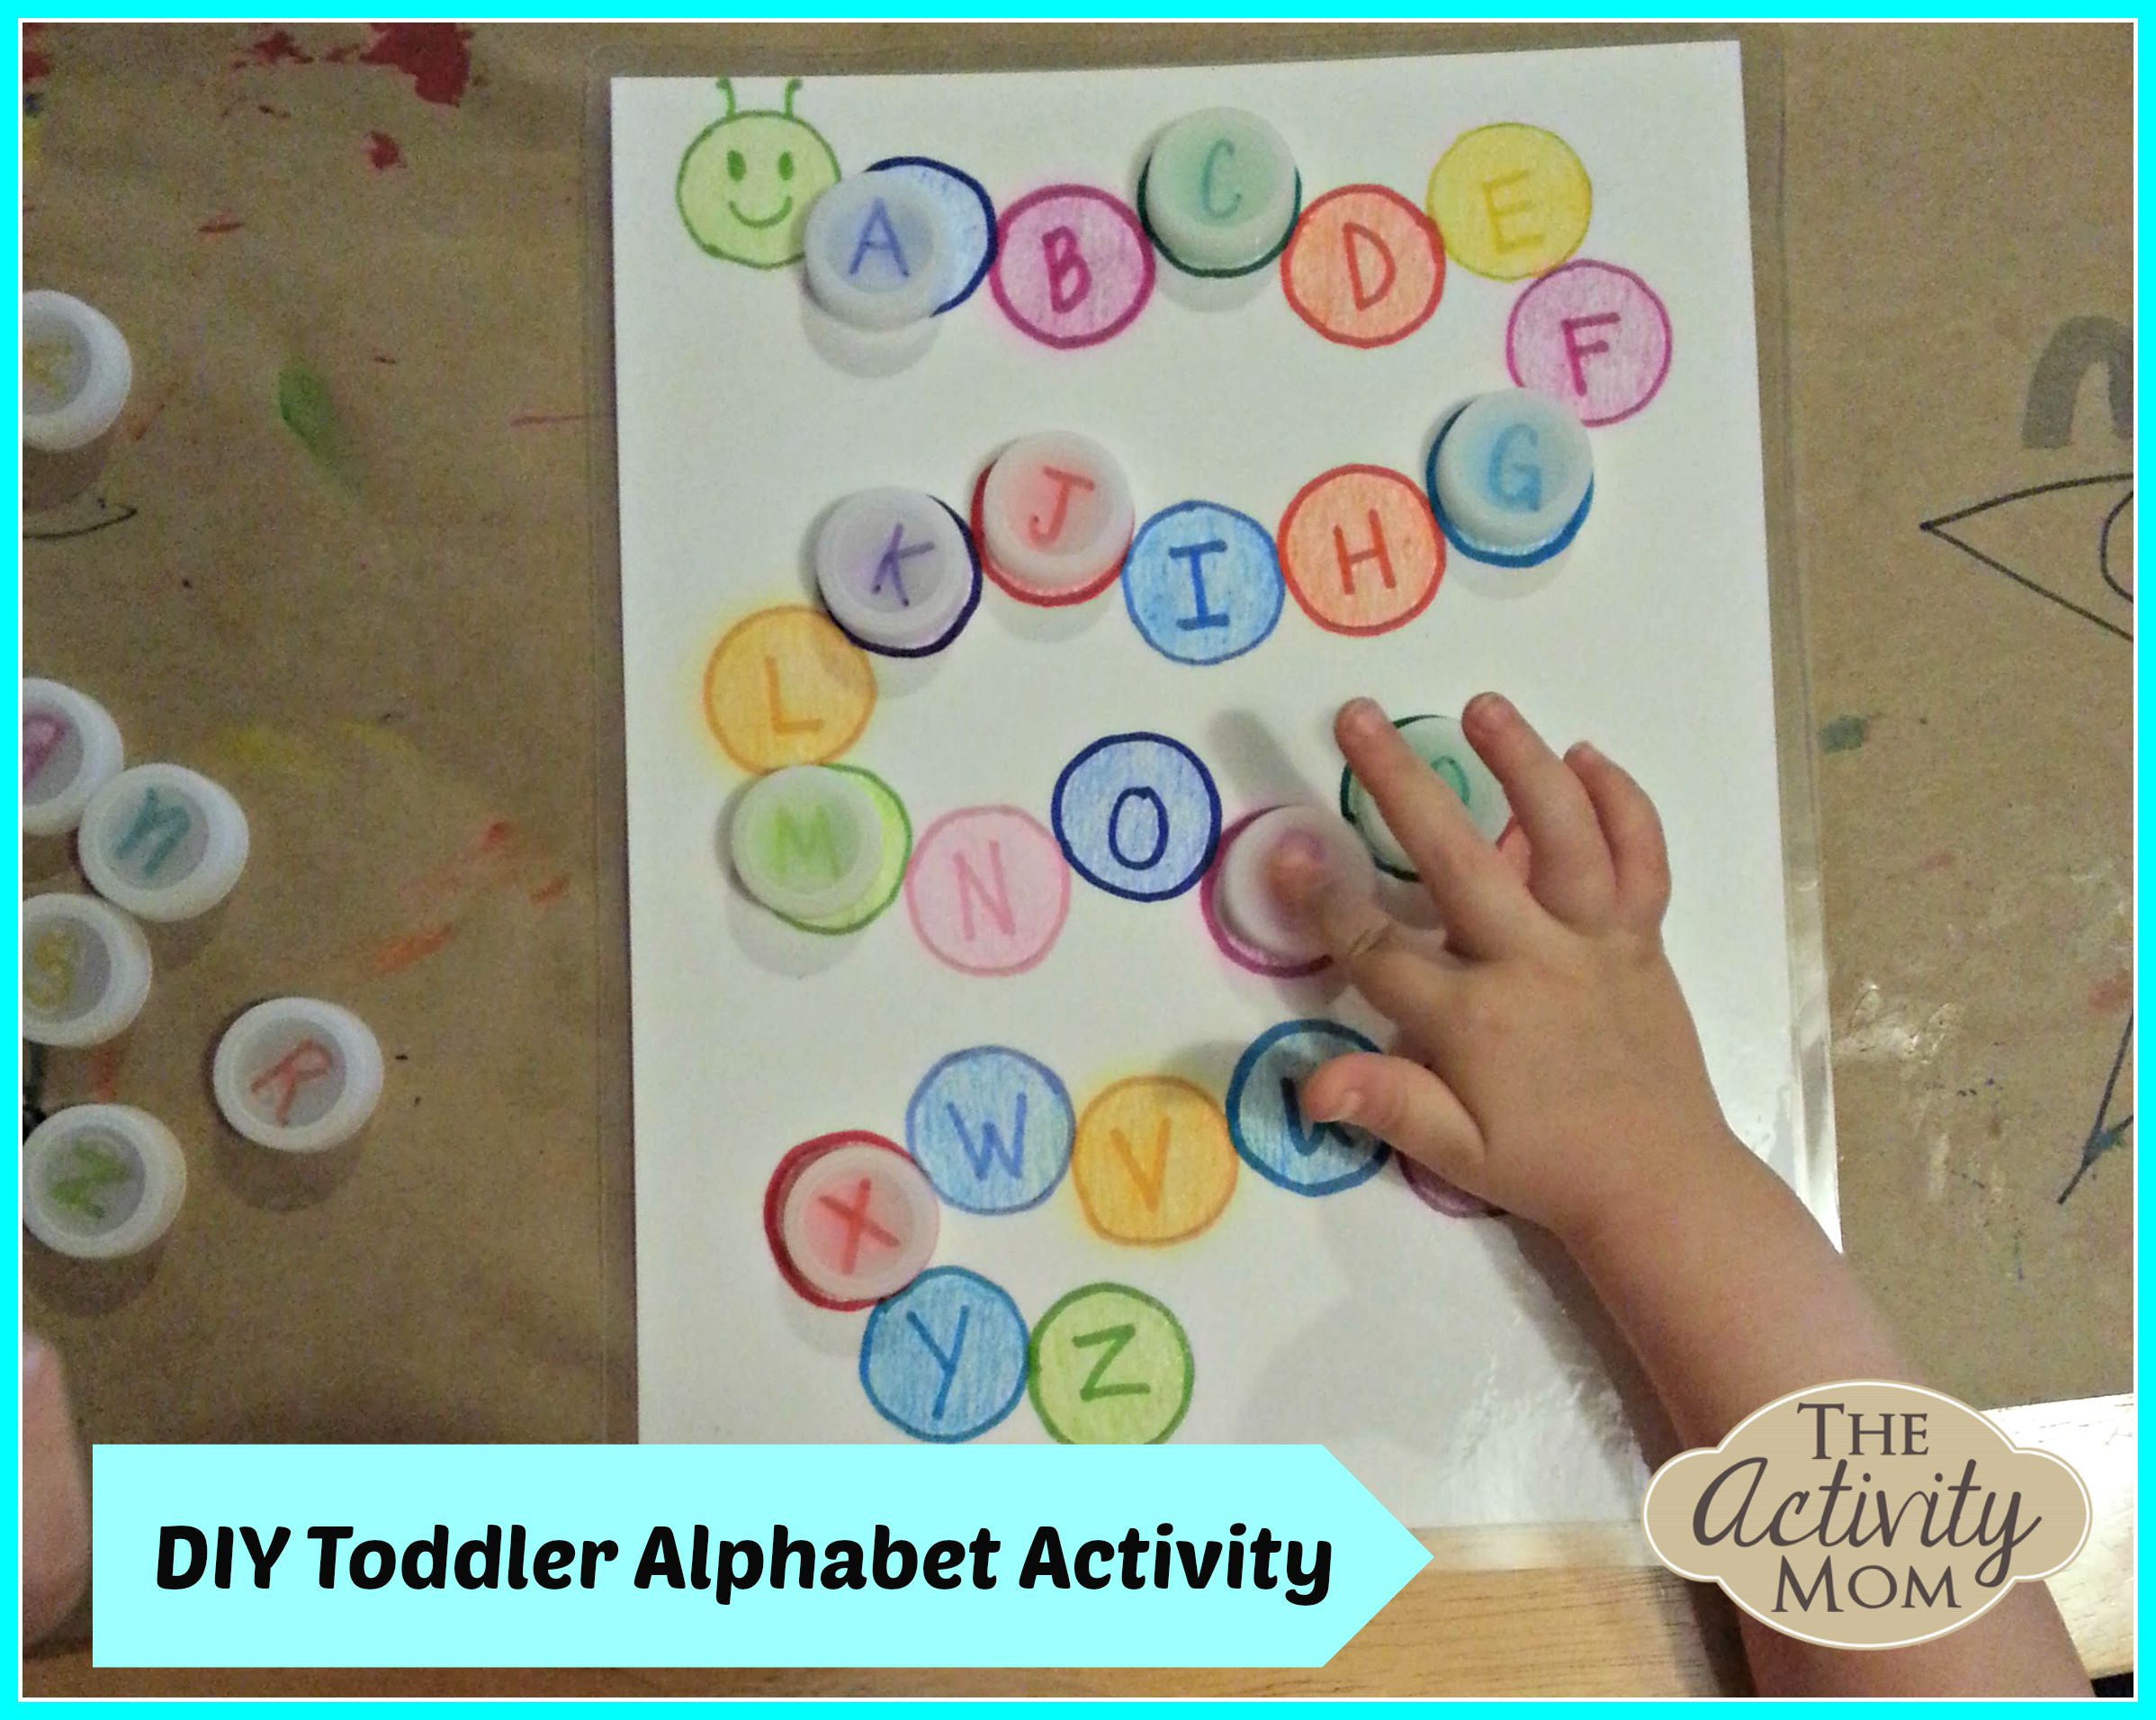 Free Printable Activities for Toddlers